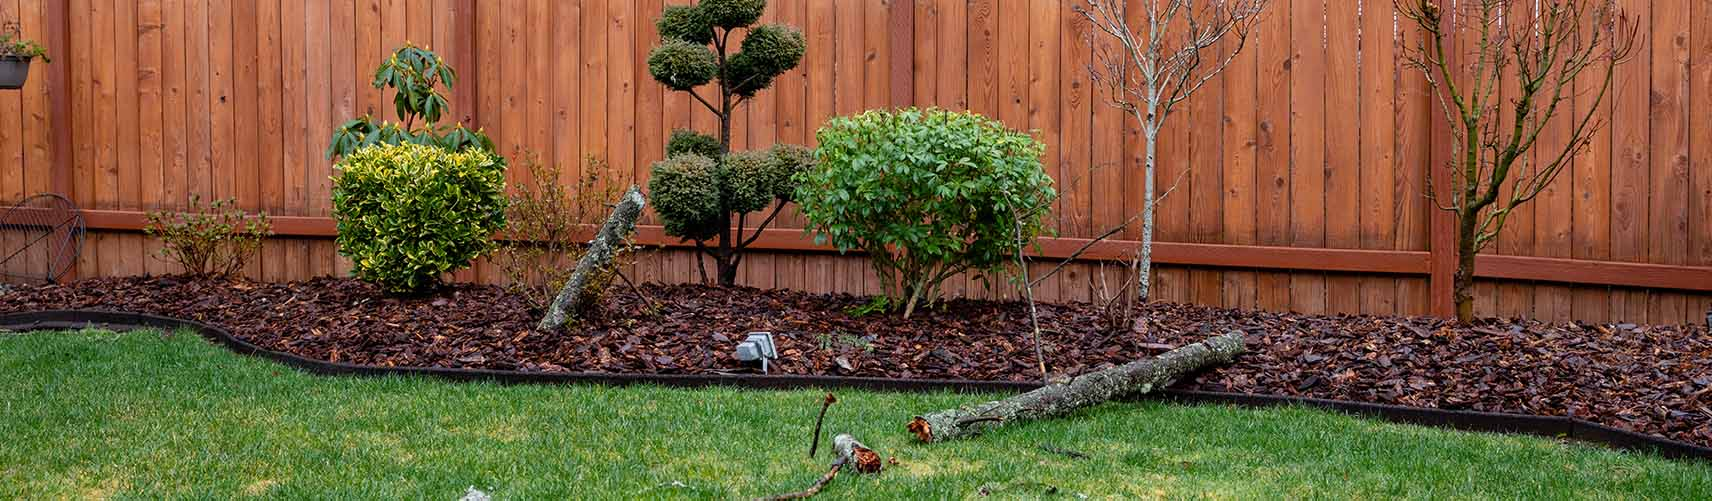 Lititz Landscaping Company, Landscape Design and Lawn Mowing Services